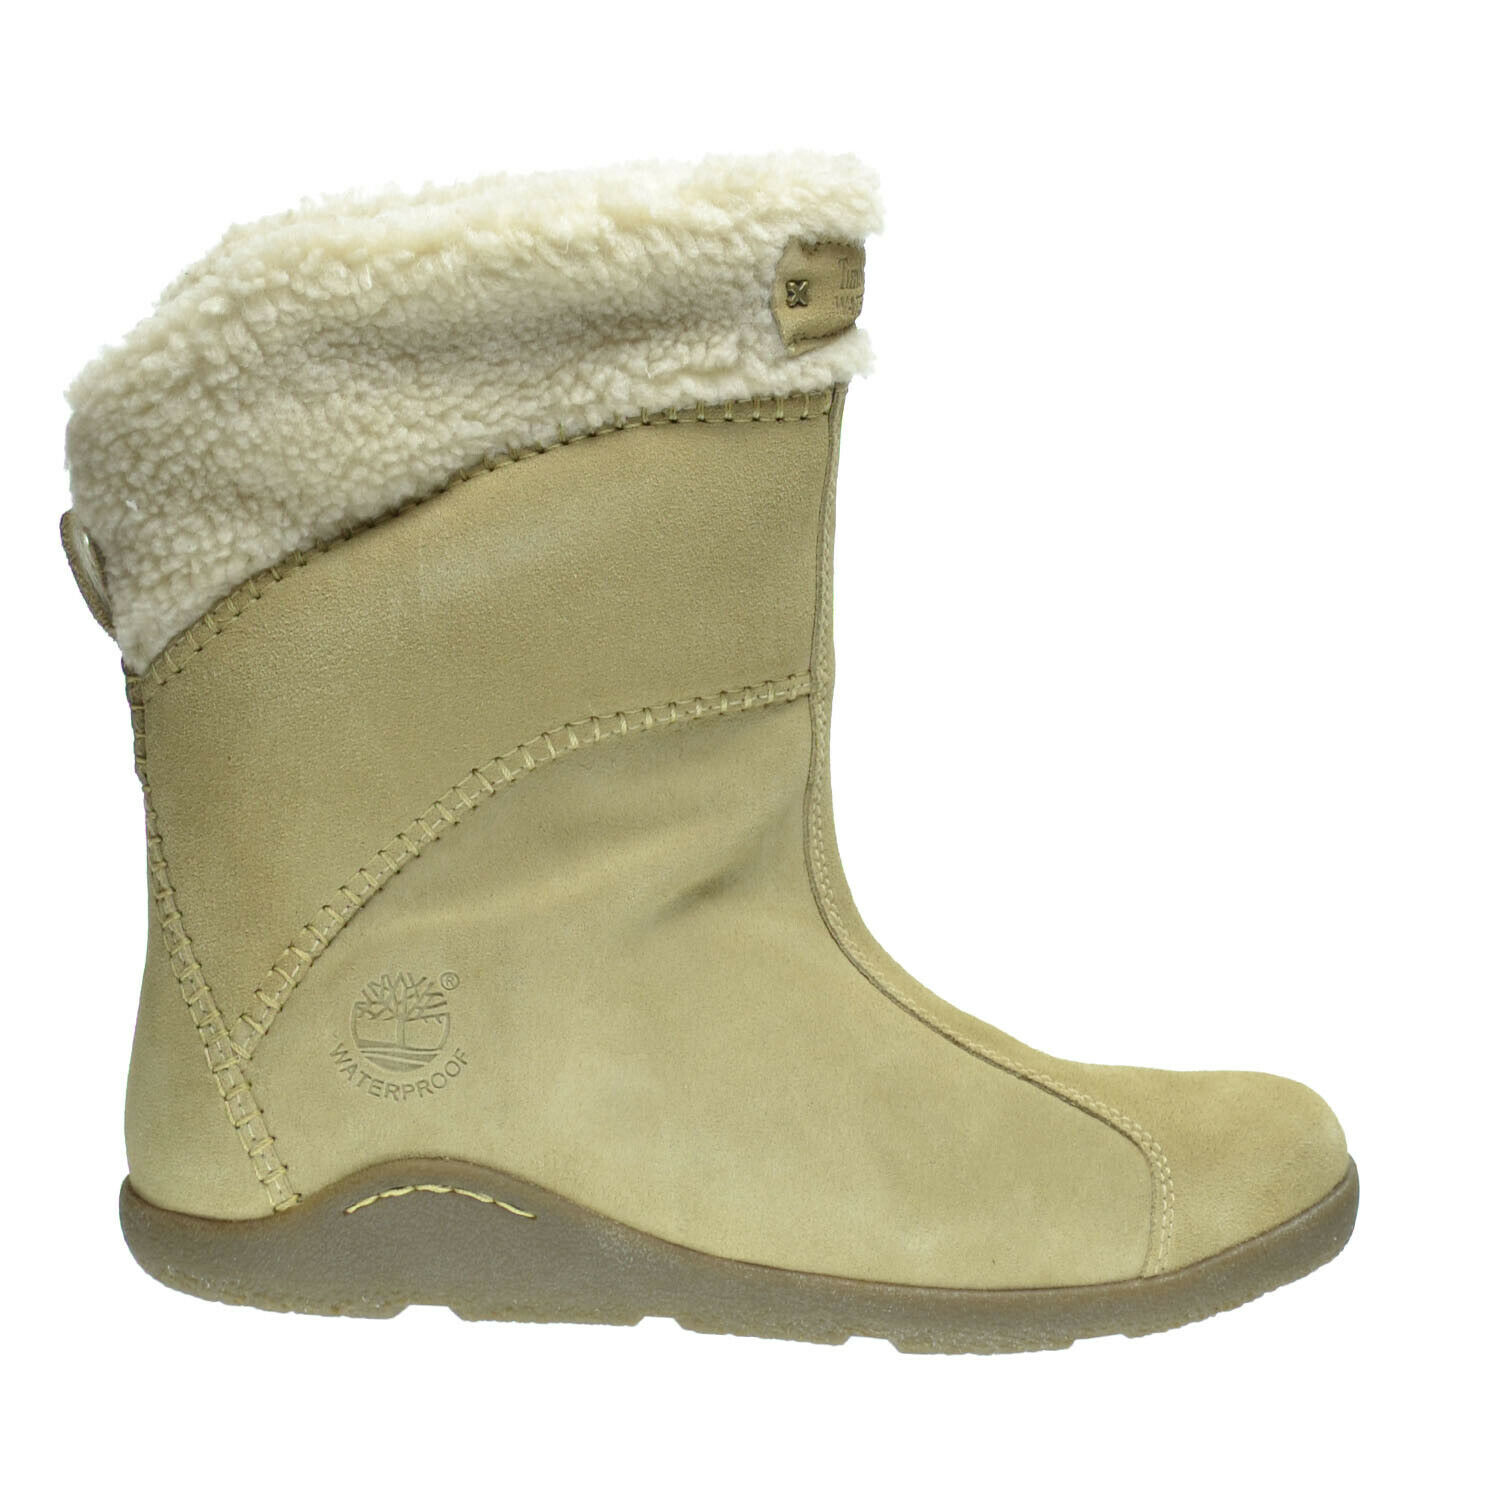 Timberland Avebury Women's Ankle Boots Sand-Light Brown 17655